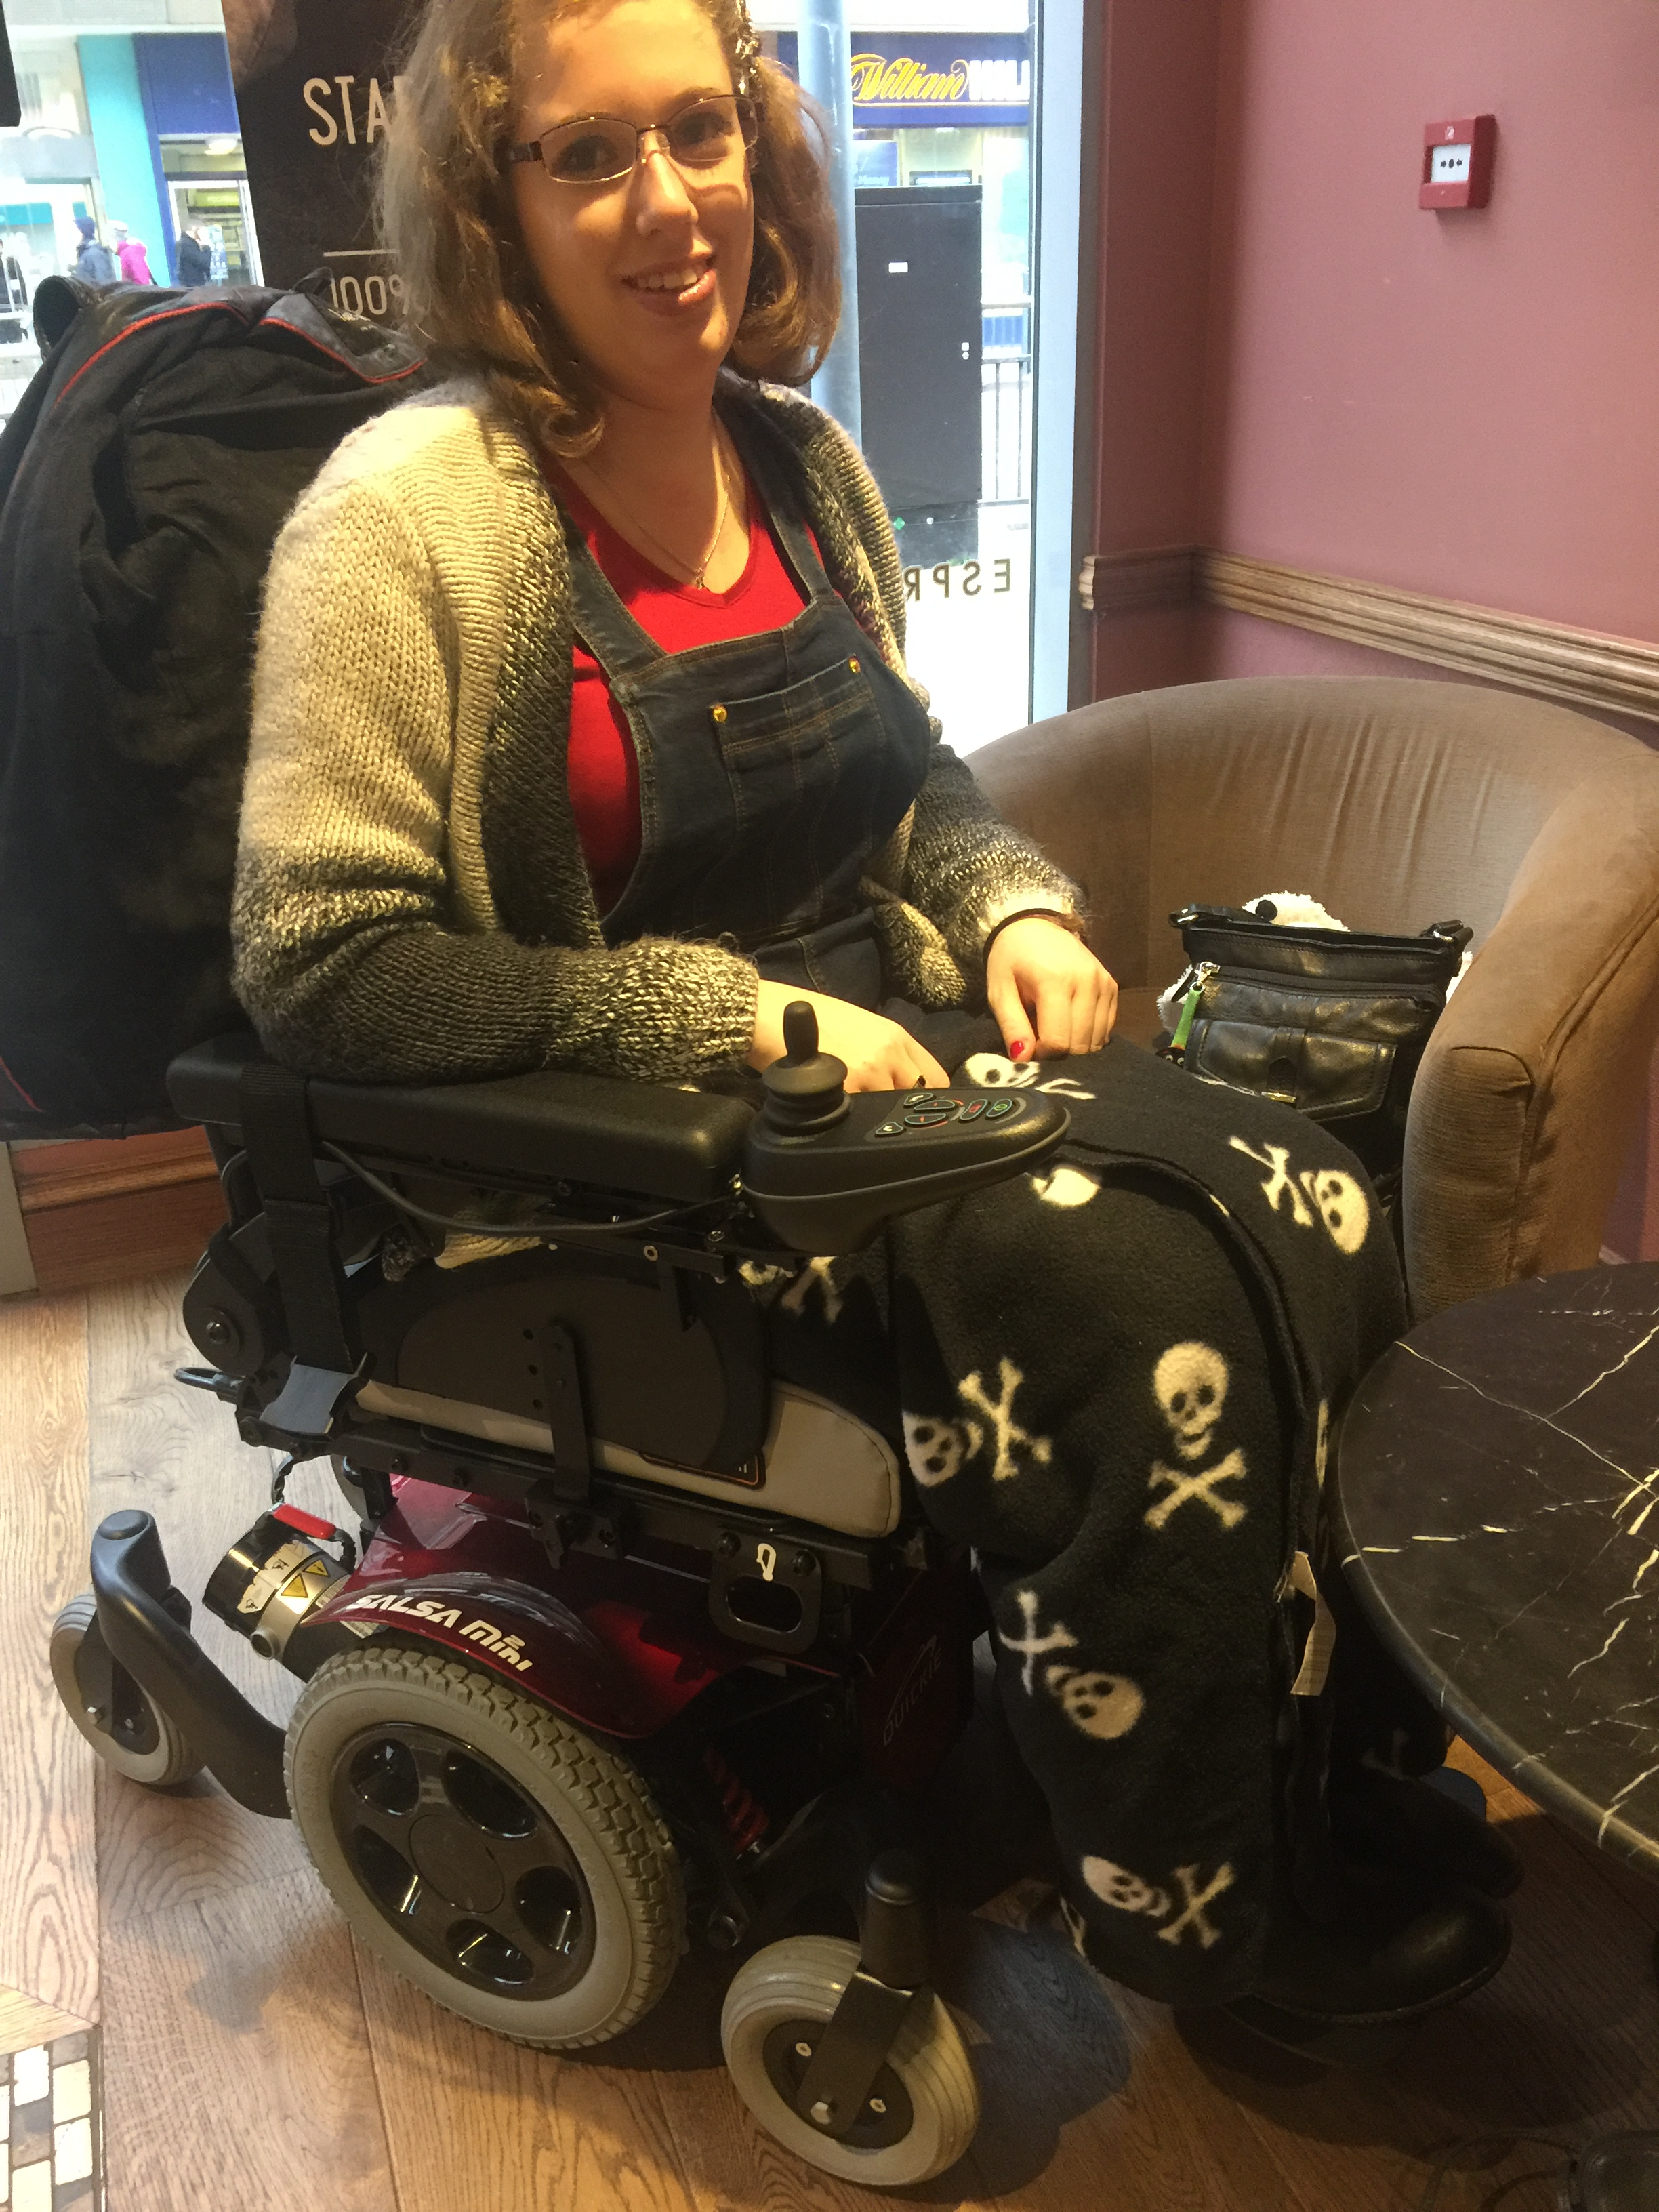 Image description: I'm sat in my powered wheelchair in a coffee shop. I have my skull and crossbones blanket on my knee, and my red top & dark blue pinafore are visible beneath my chunky knit cardigan.